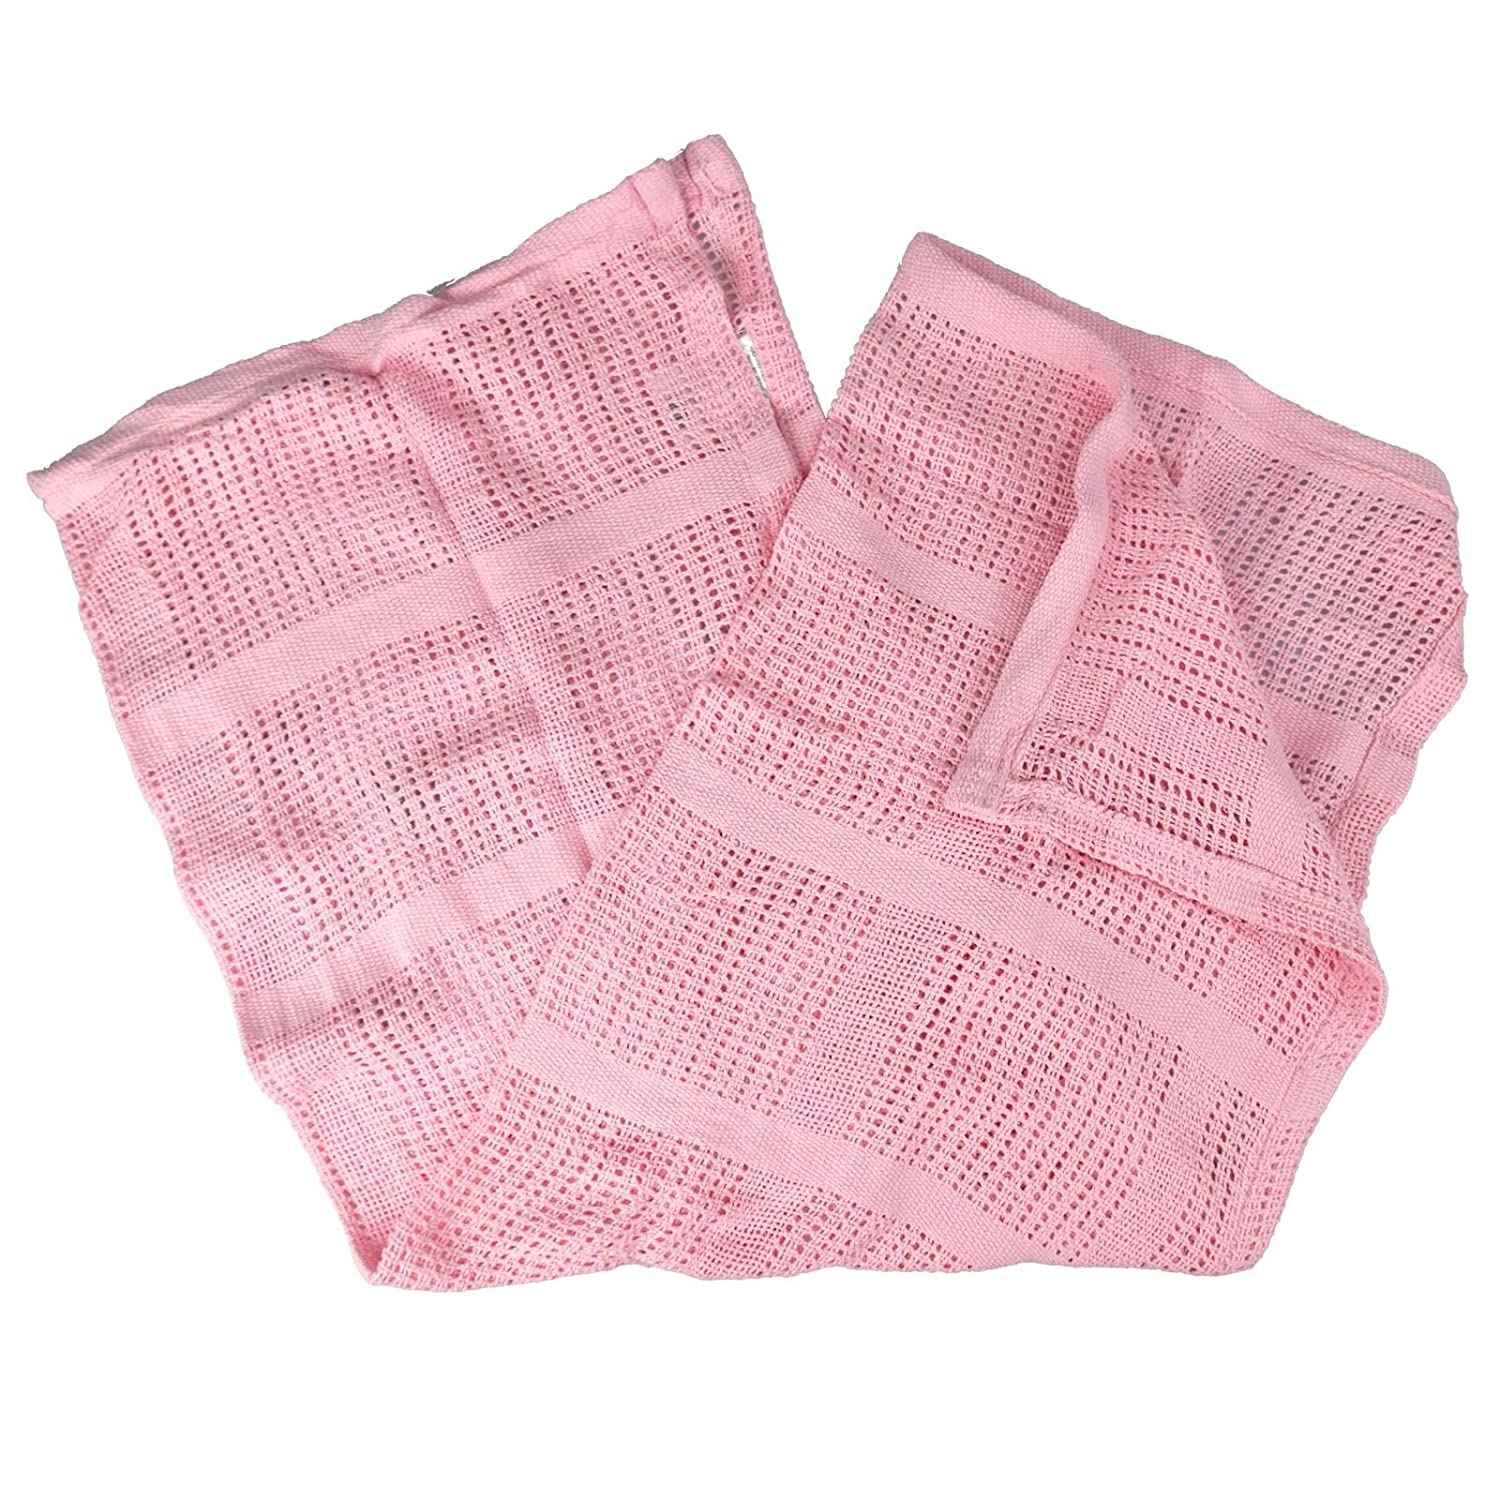 Crib Ideal For Travel Cot Bed for Girls and Boys 100/% Warm Cotton Cellular Pink 2pack Moses Basket Big New Born Baby Blanket 70x90cm Pram Stroller